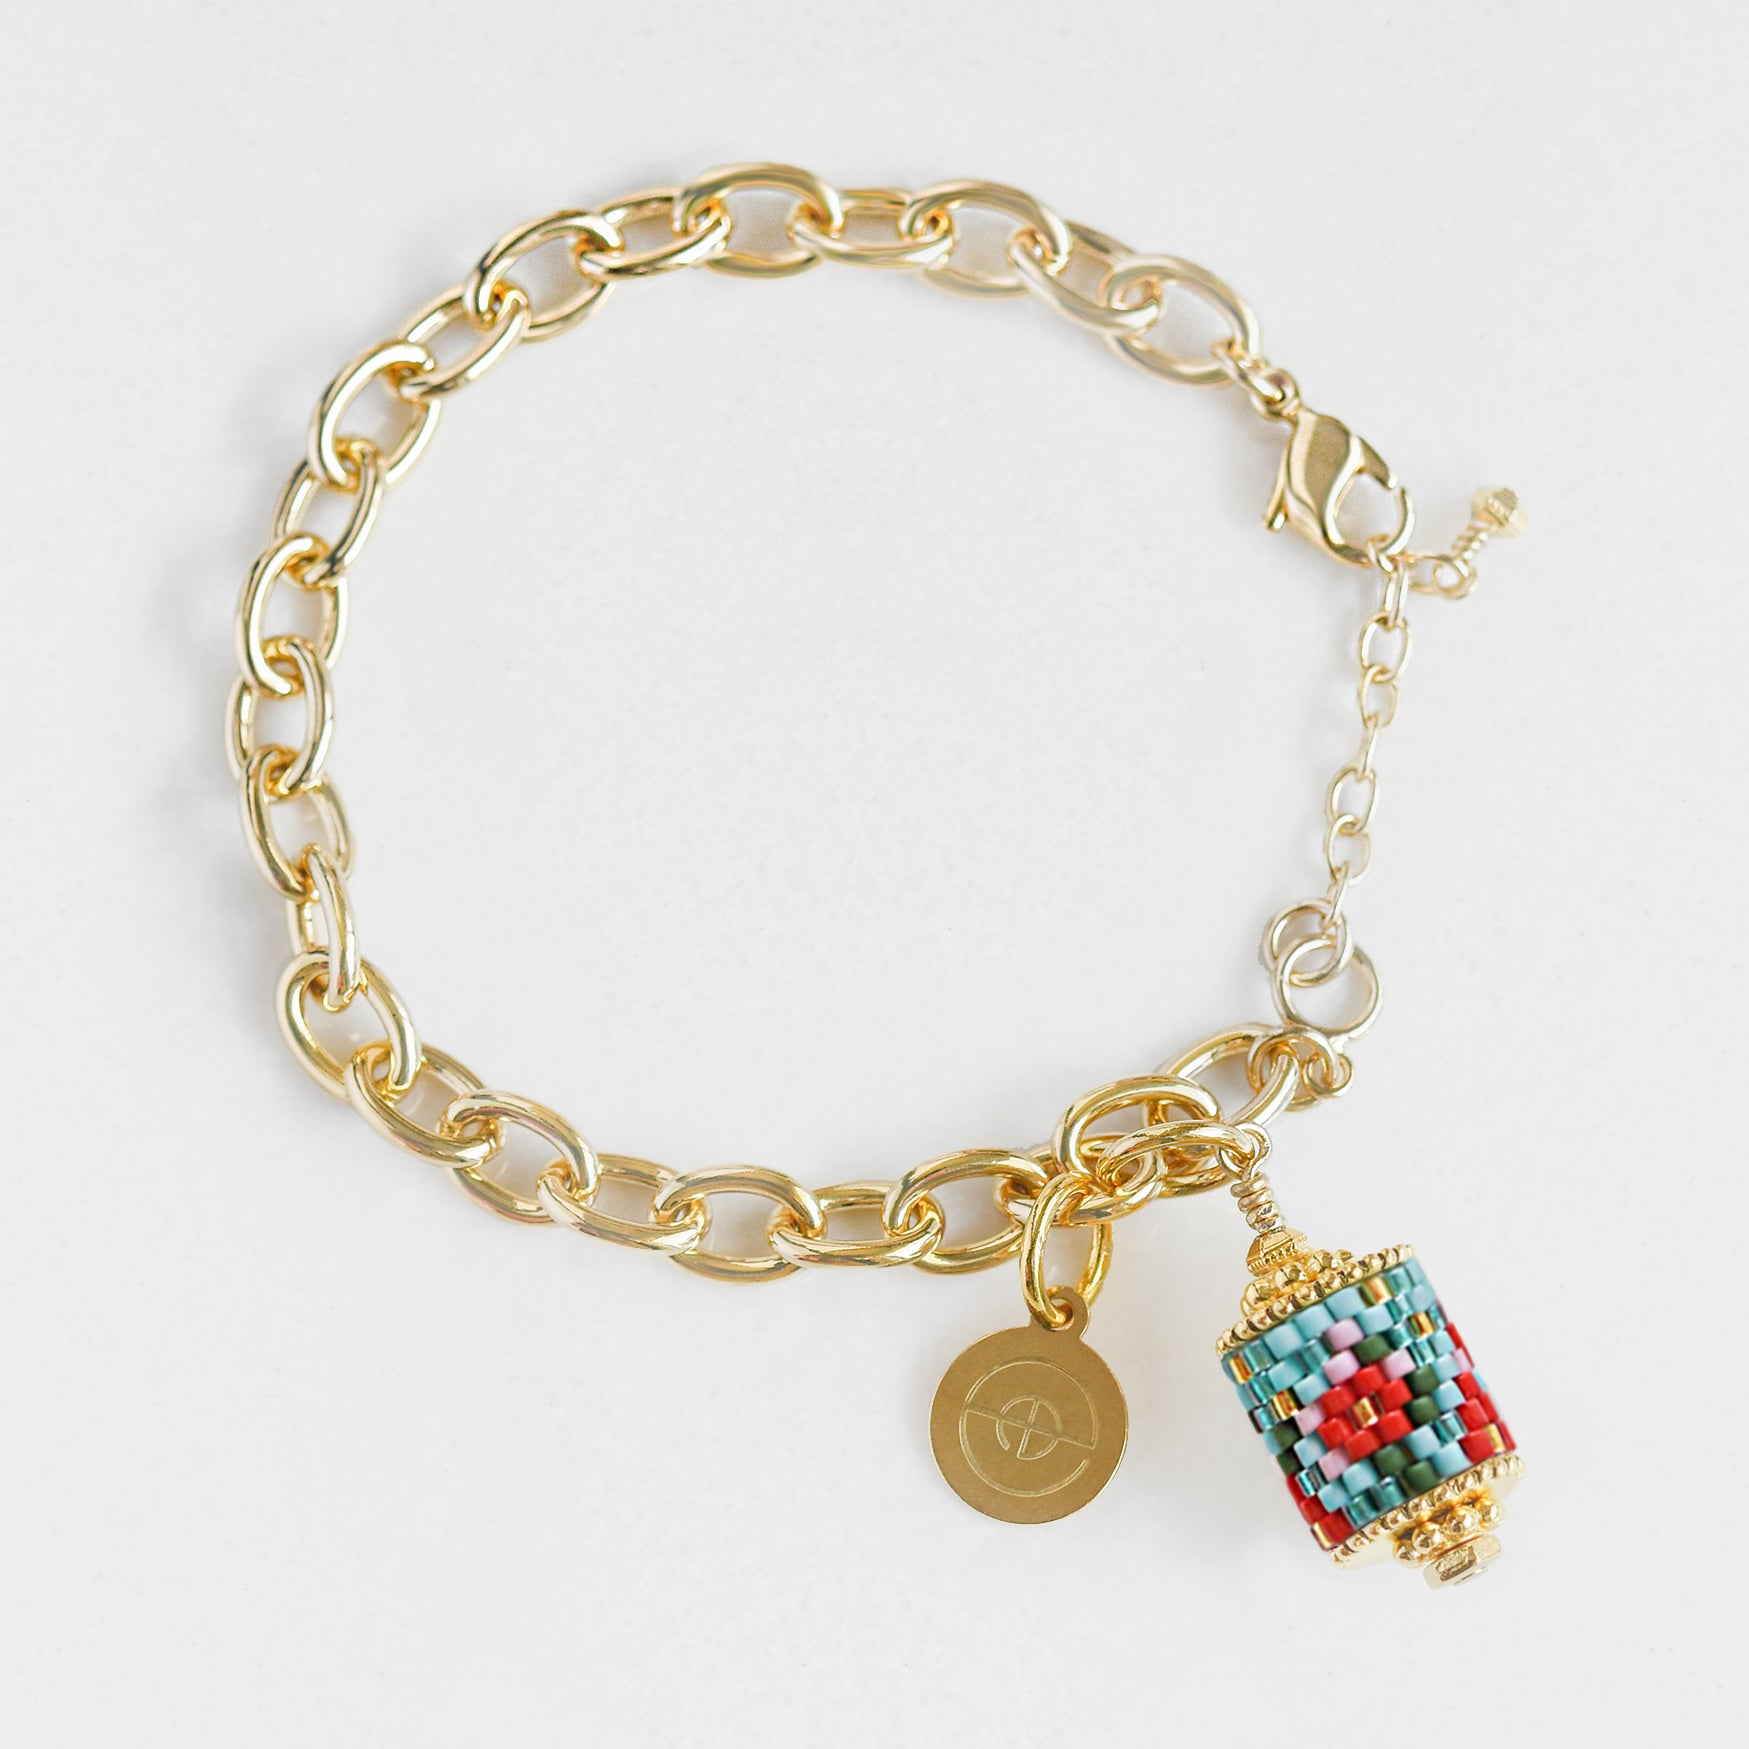 Handwoven gold plated charm bracelets